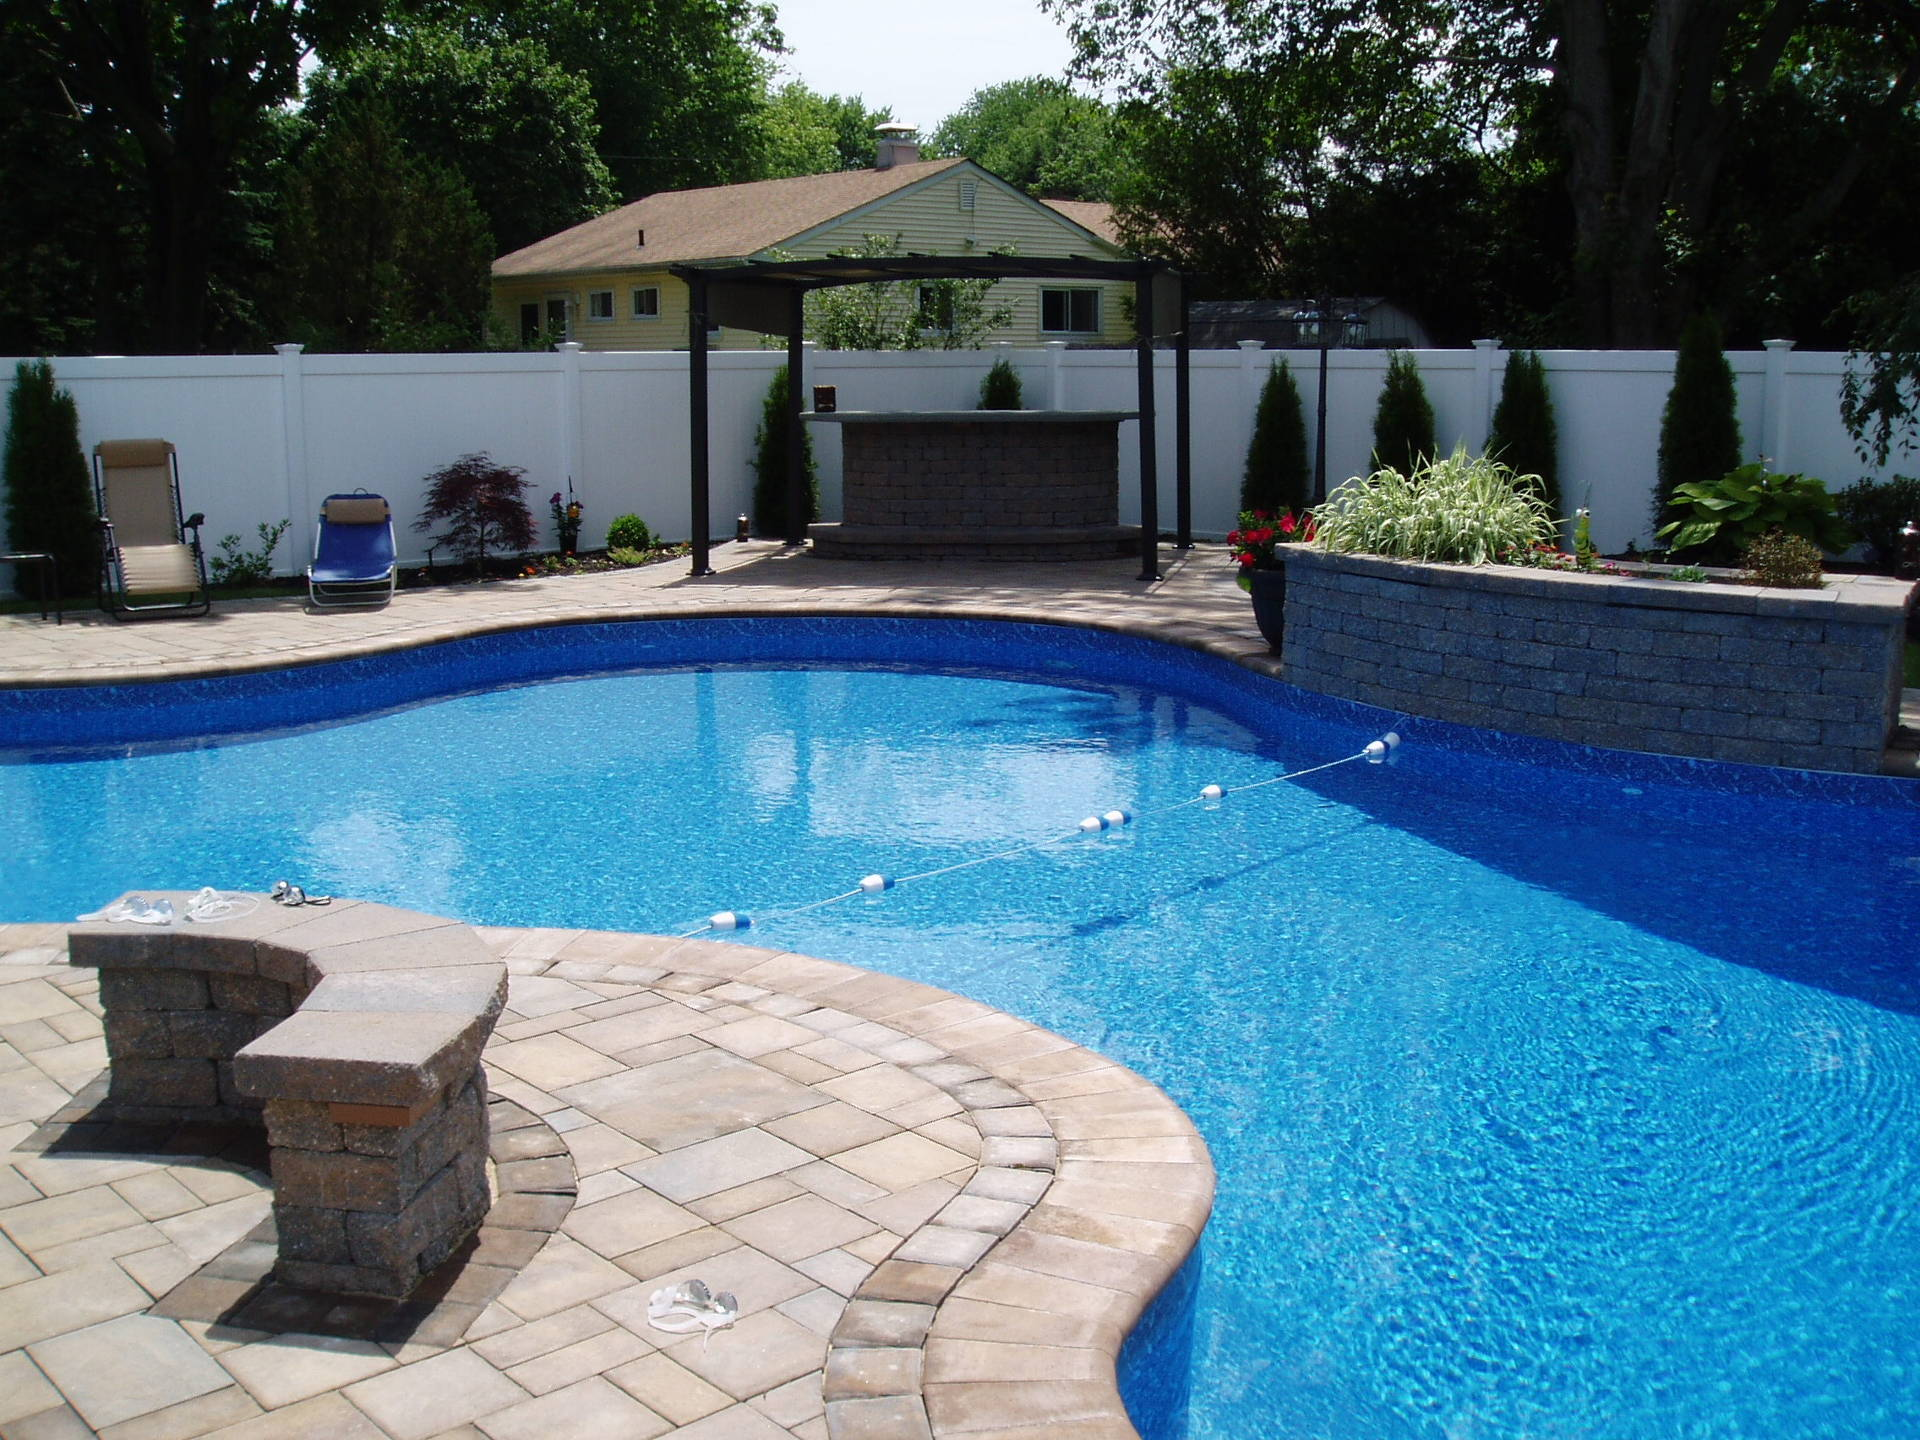 Long island poolscape suffolk county pool services - Guntersville public swimming pool ...